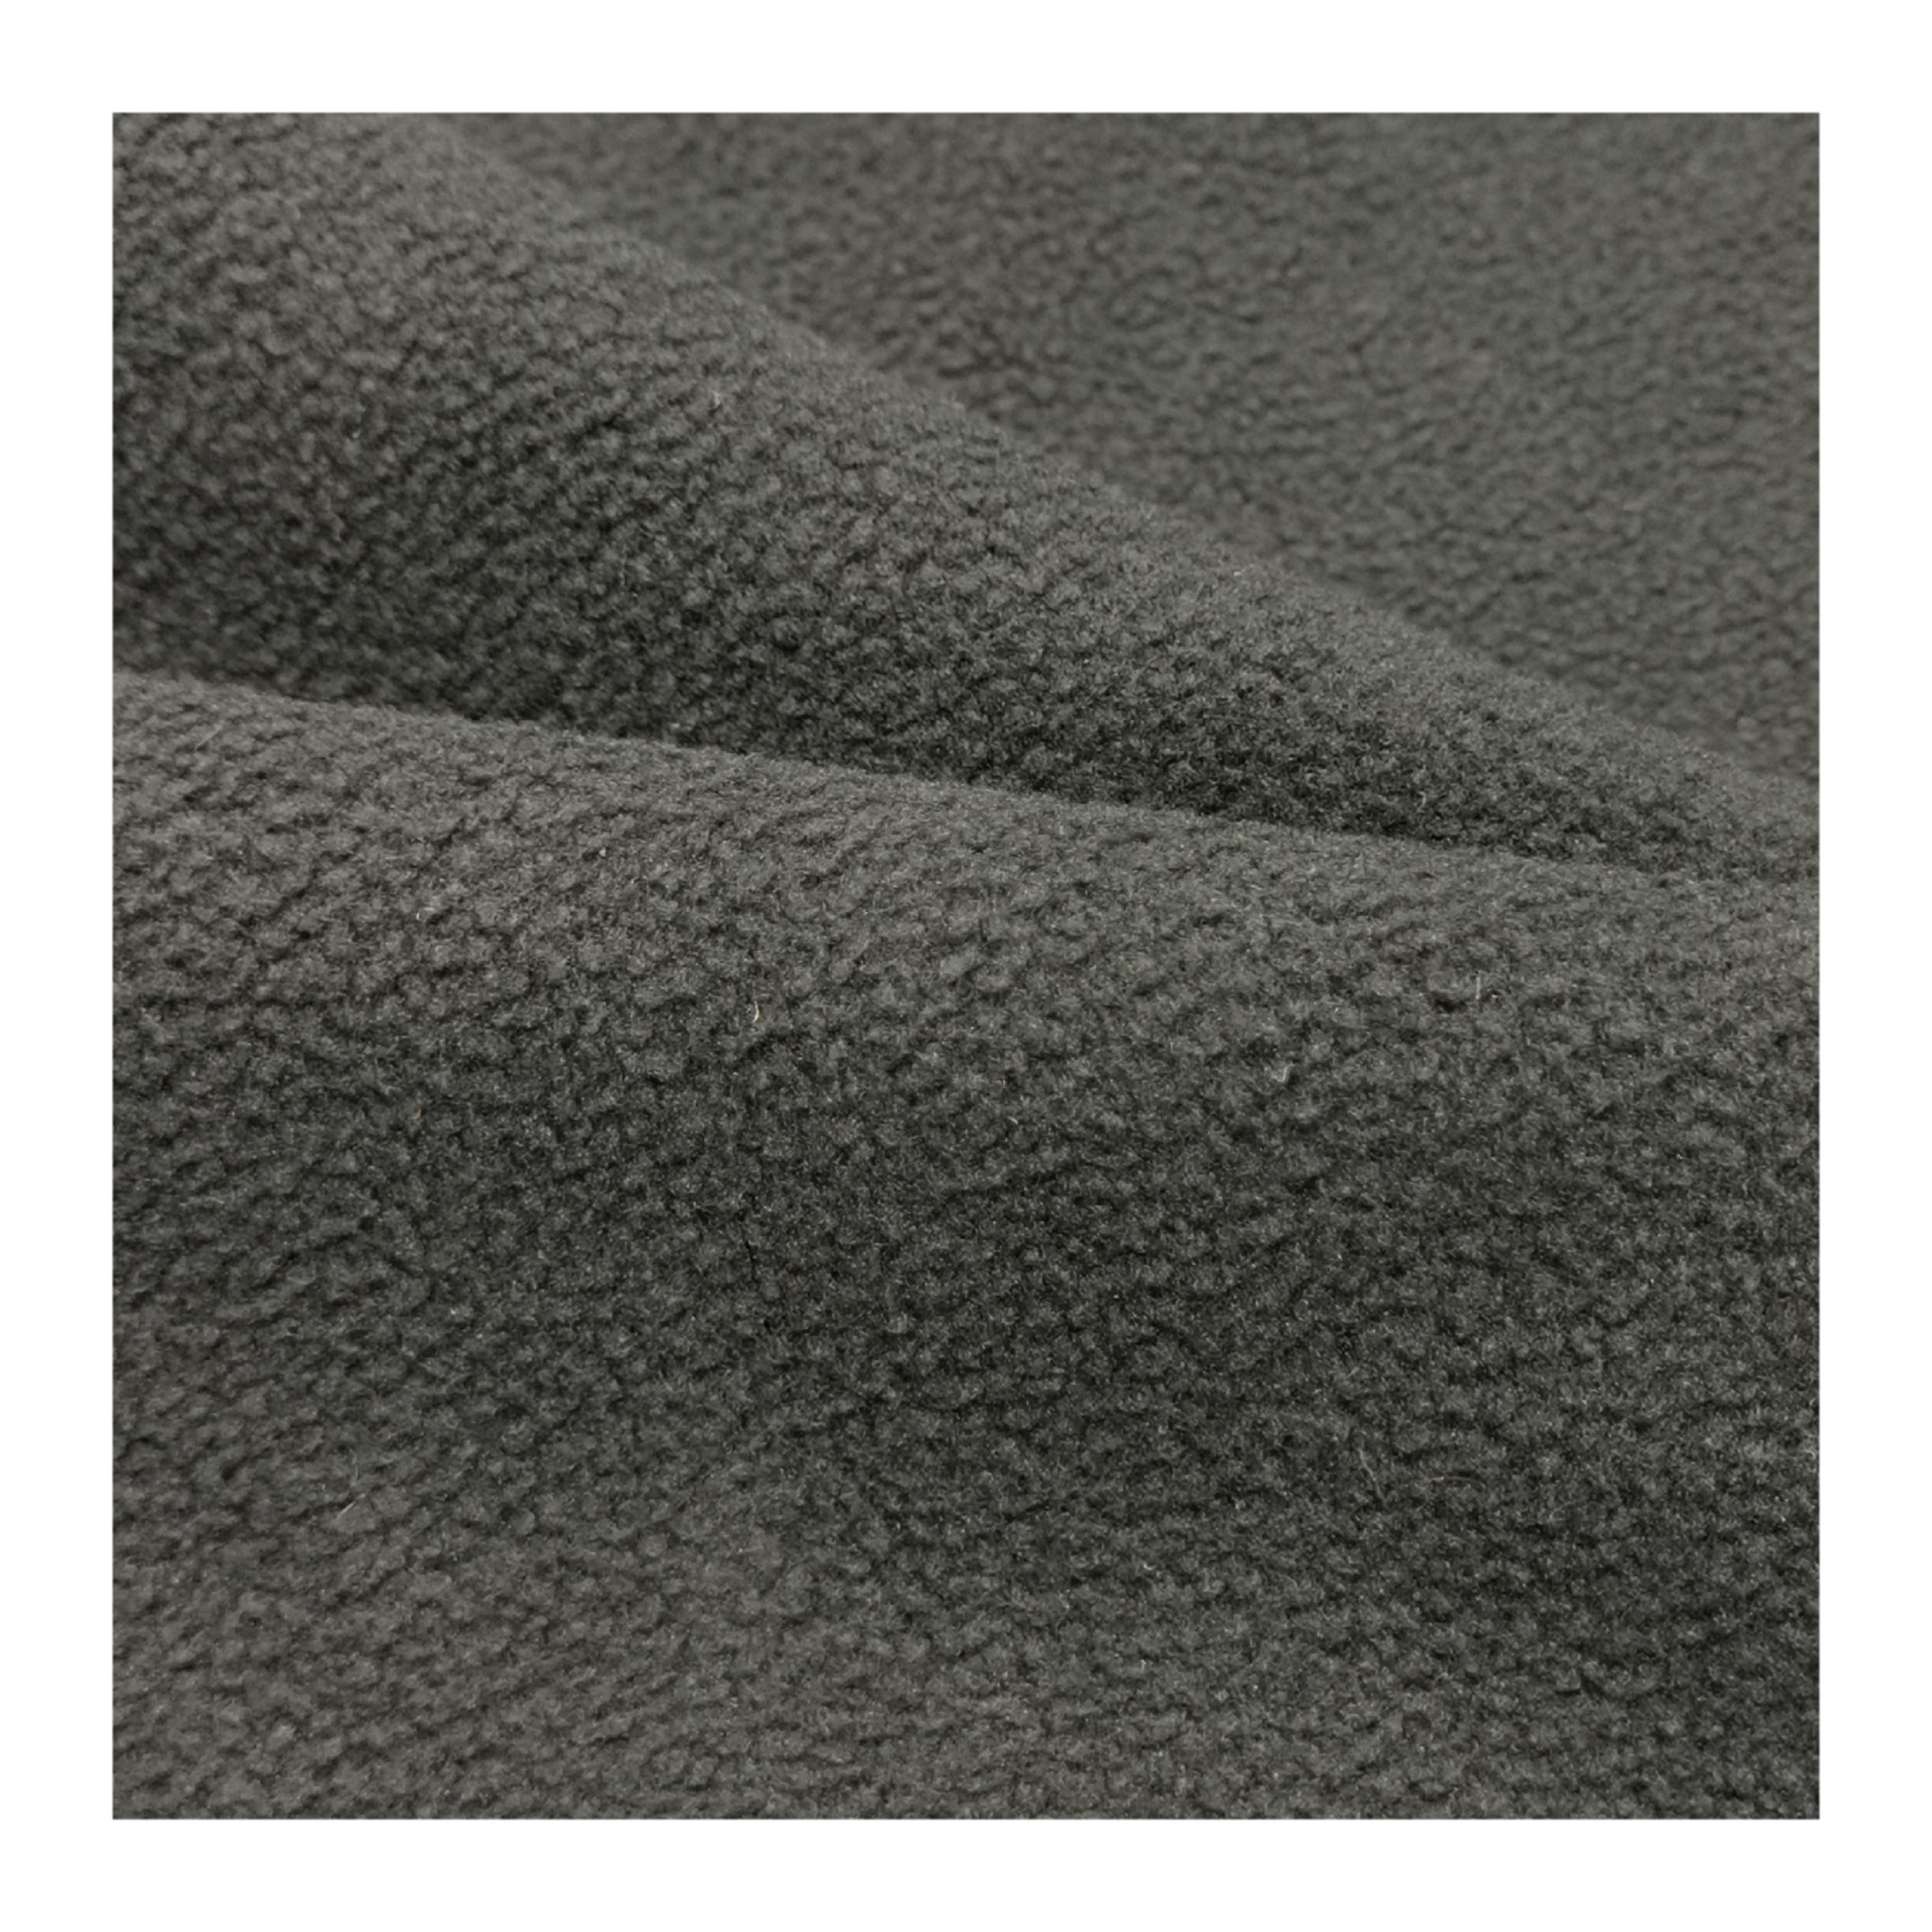 100%Polyester Knitted Polar Fleece two sides brushed one side antipilling Keep Warm for Soft Jacket Garment Fabric